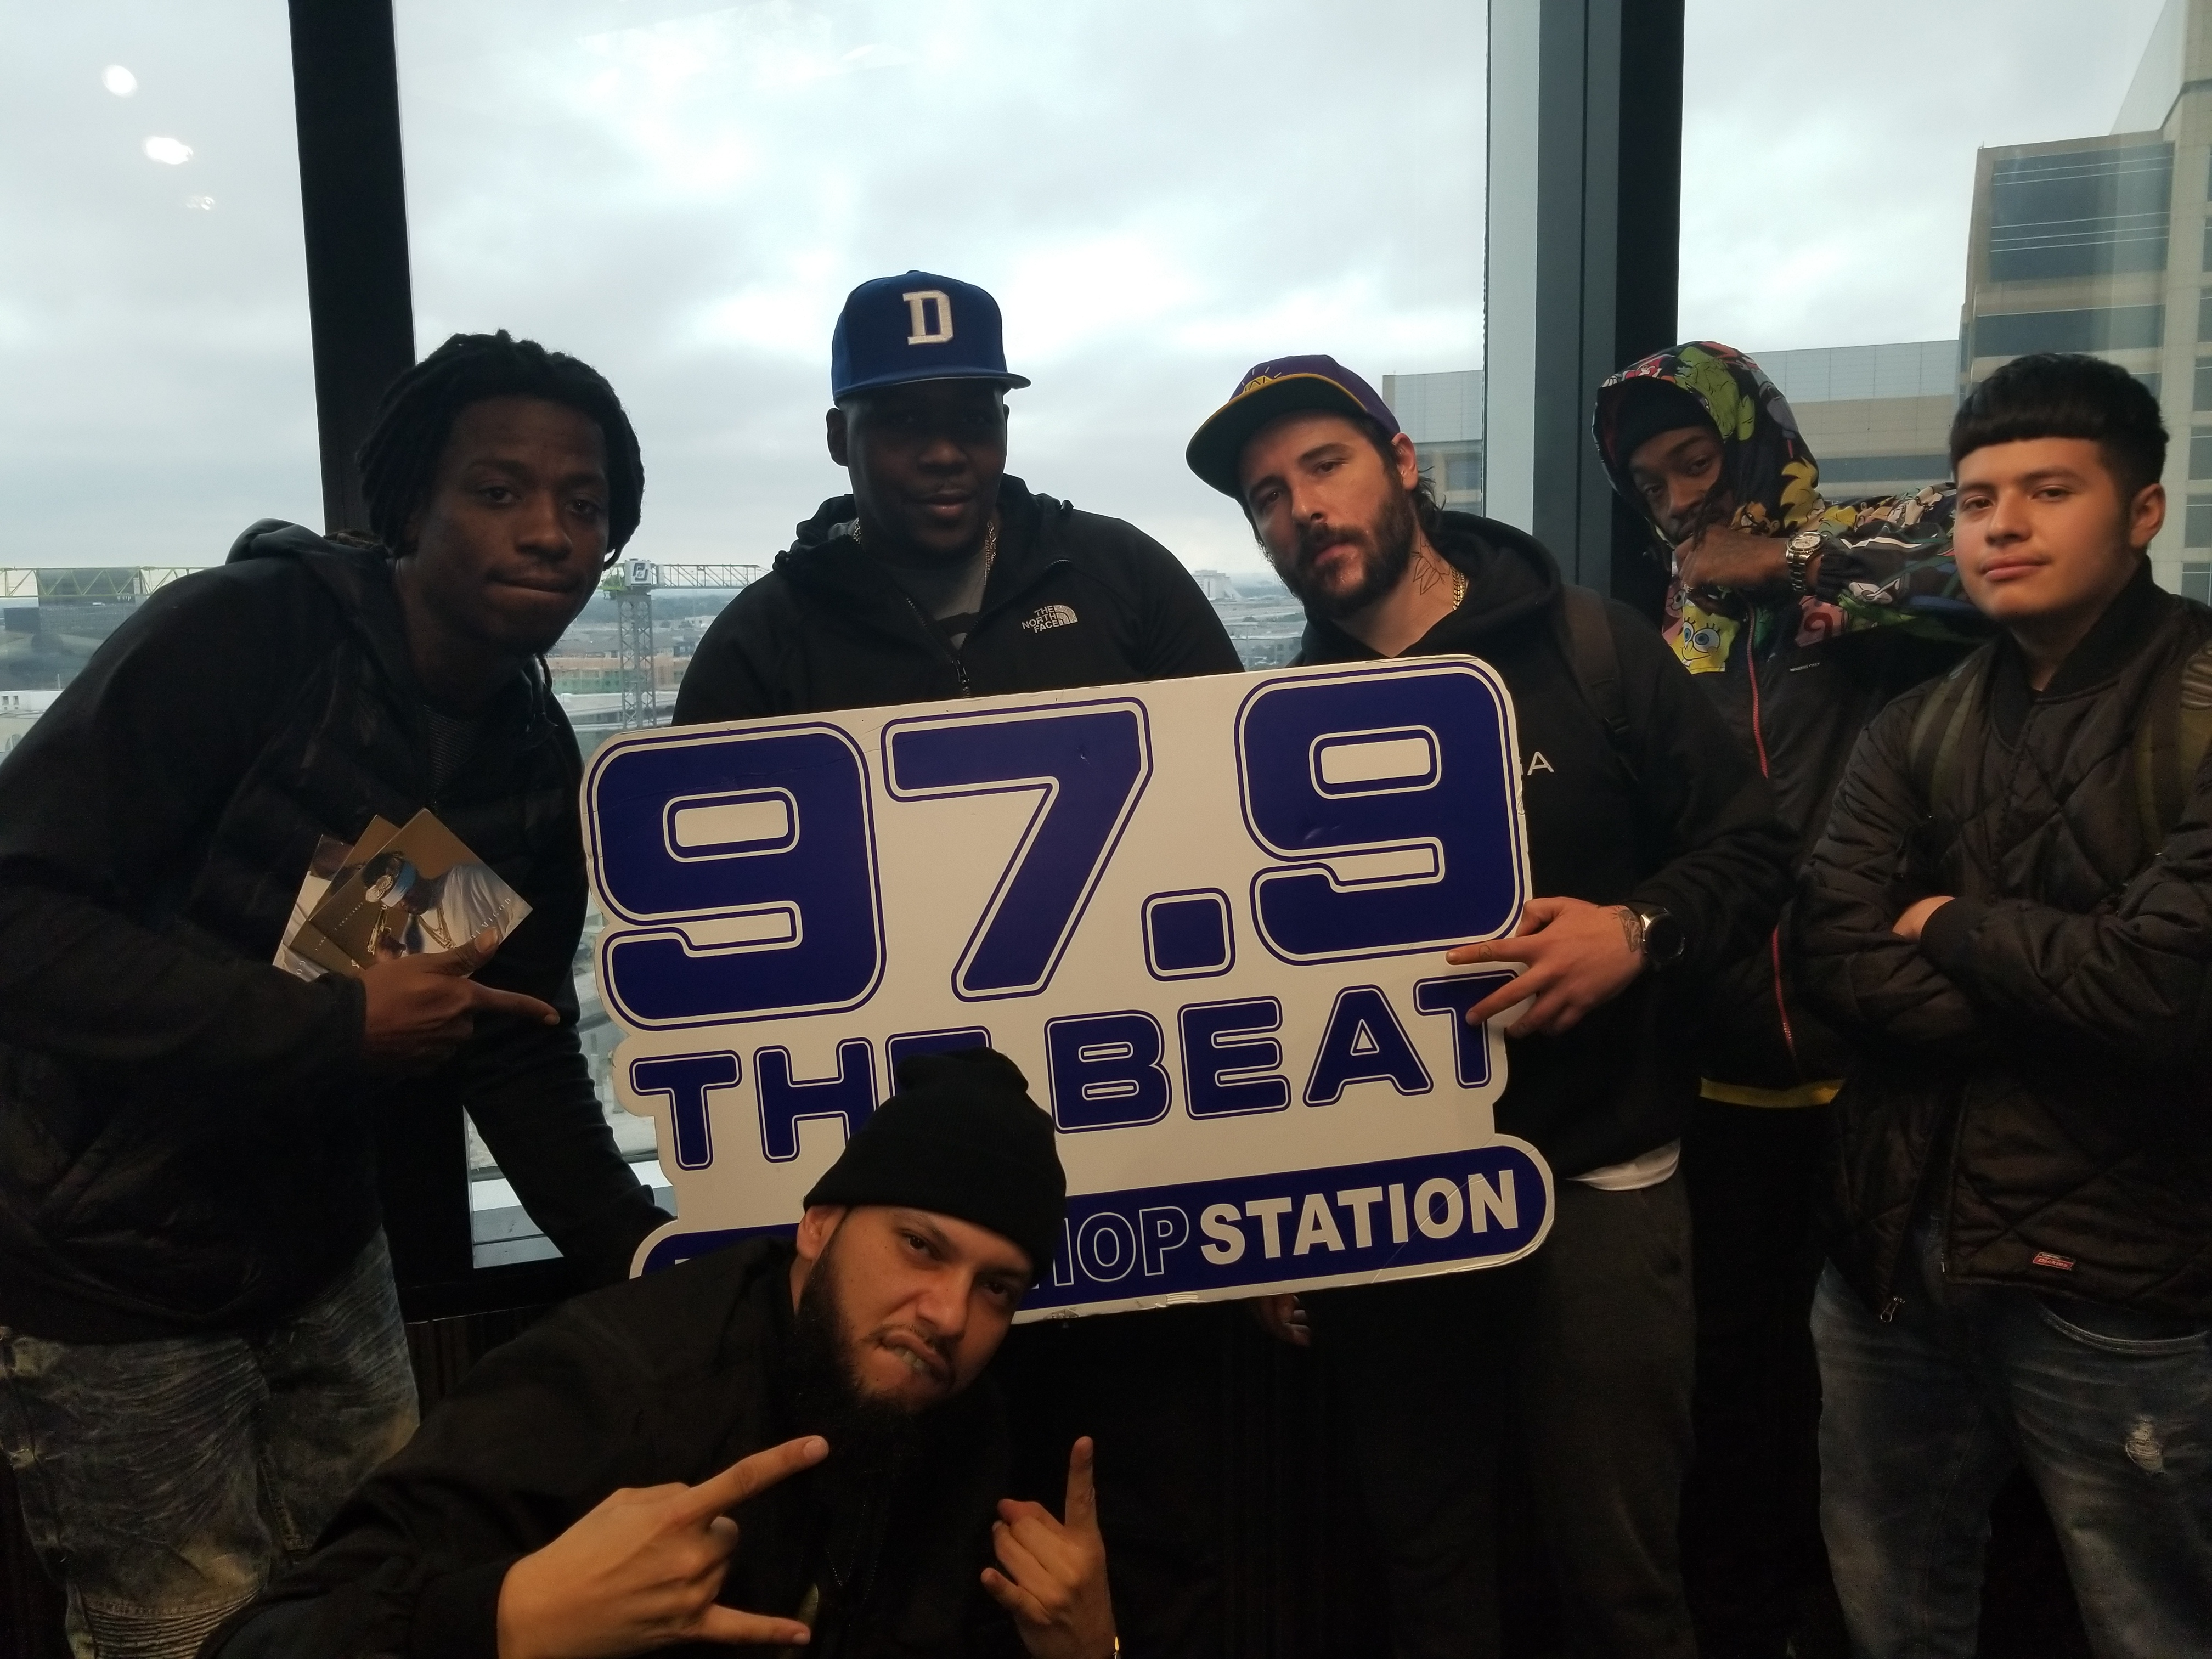 7 Tha Great Stops by 97.9 The Beat